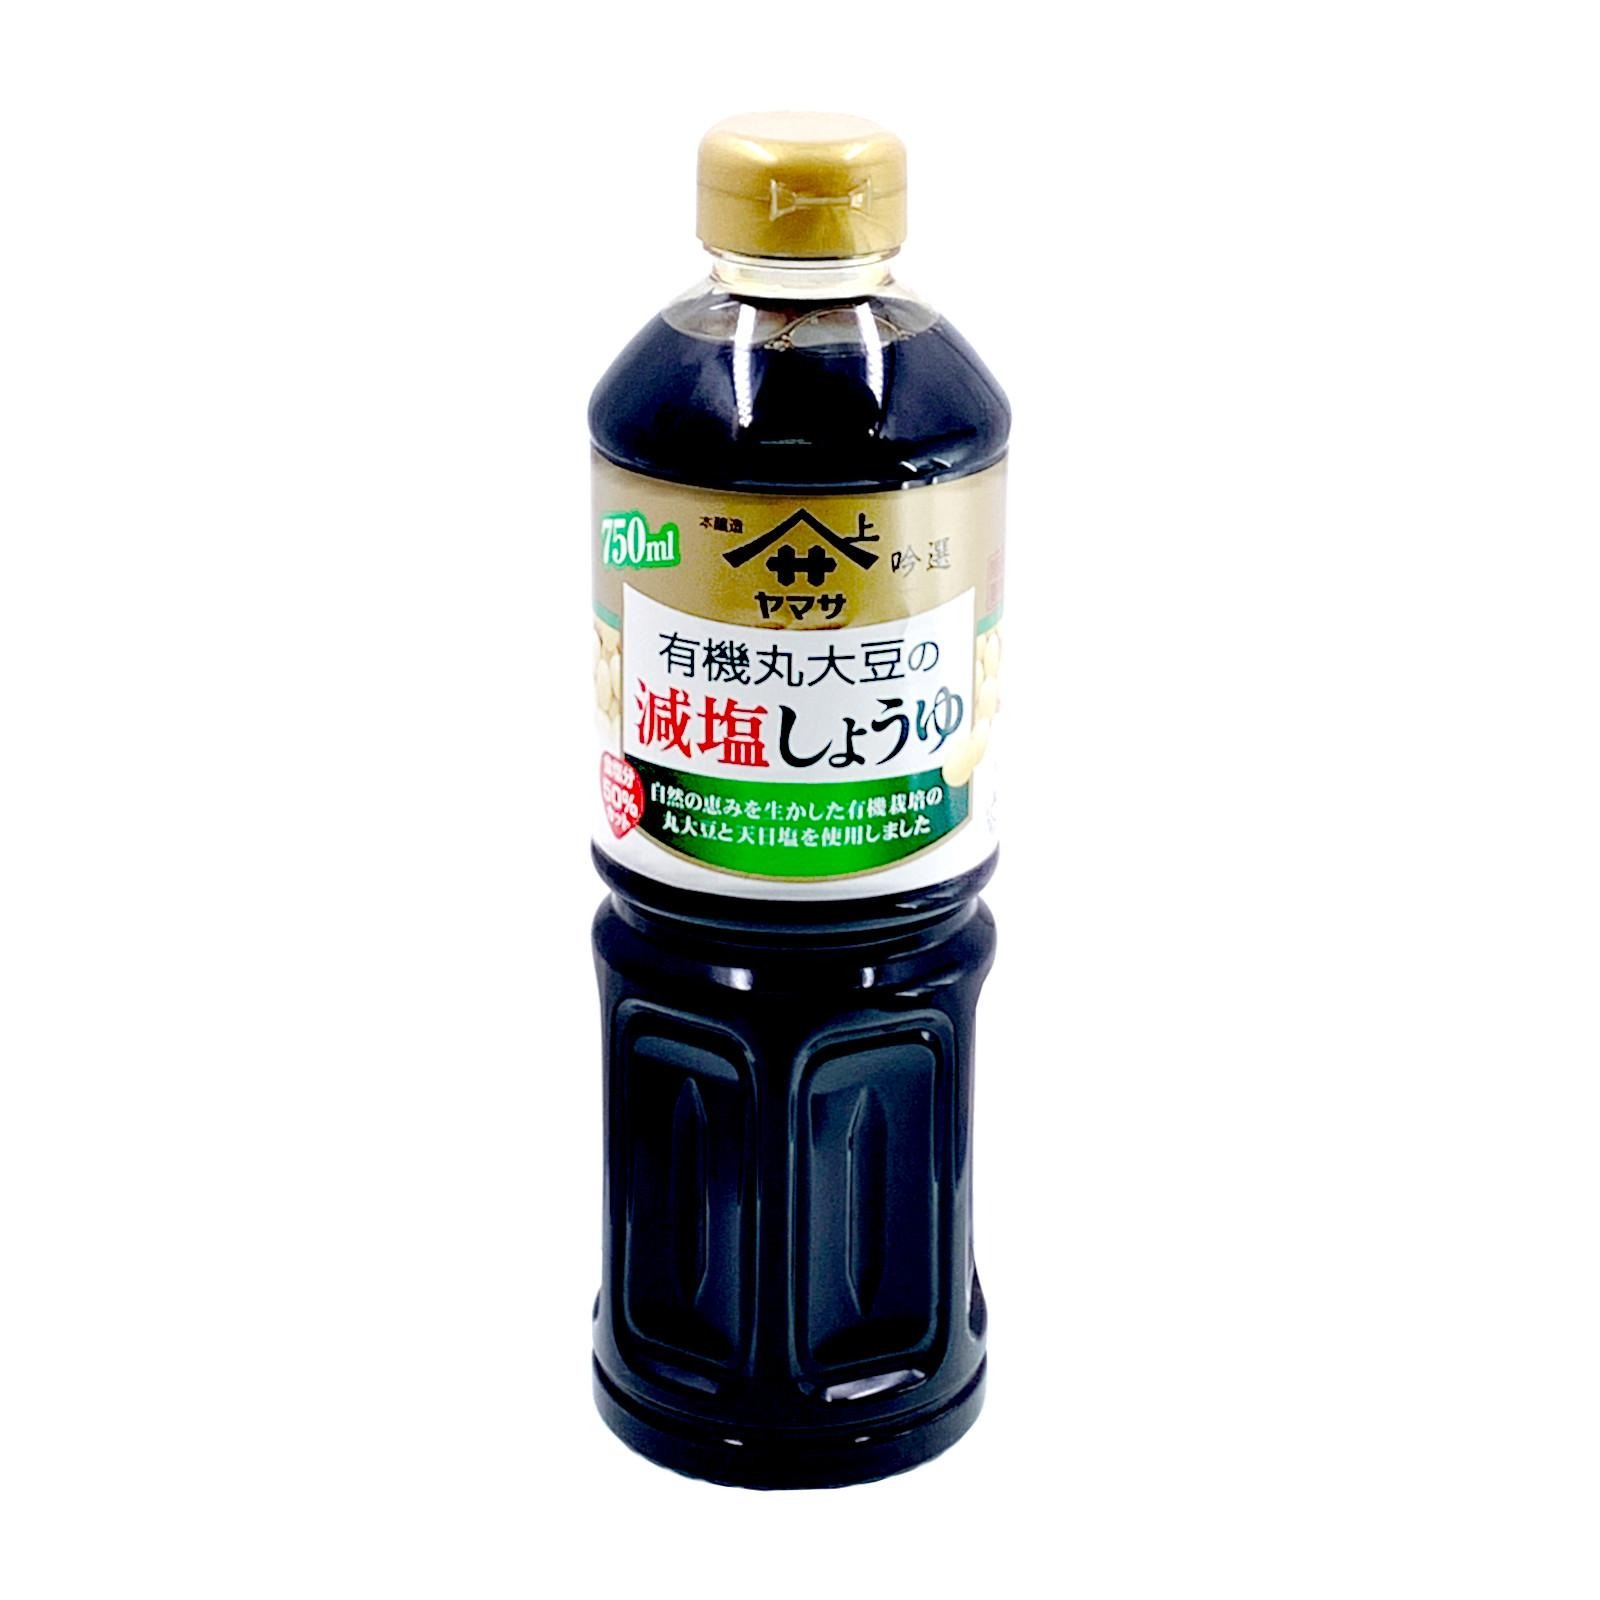 Yamasa Premium Organic Shoyu Soy Sauce (Reduced Salt)